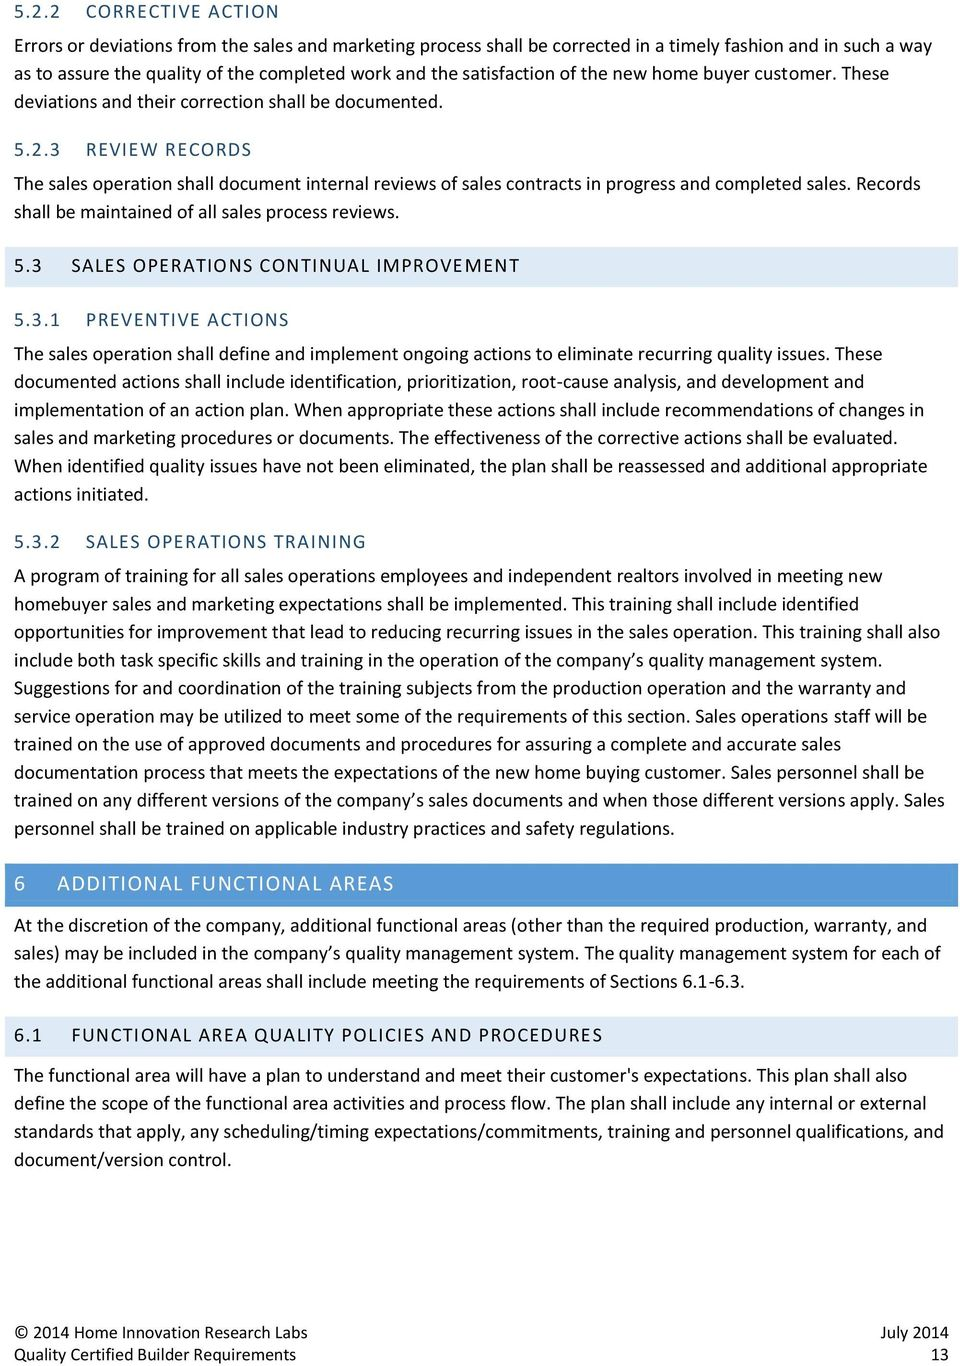 QUALITY MANAGEMENT SYSTEM REQUIREMENTS - PDF